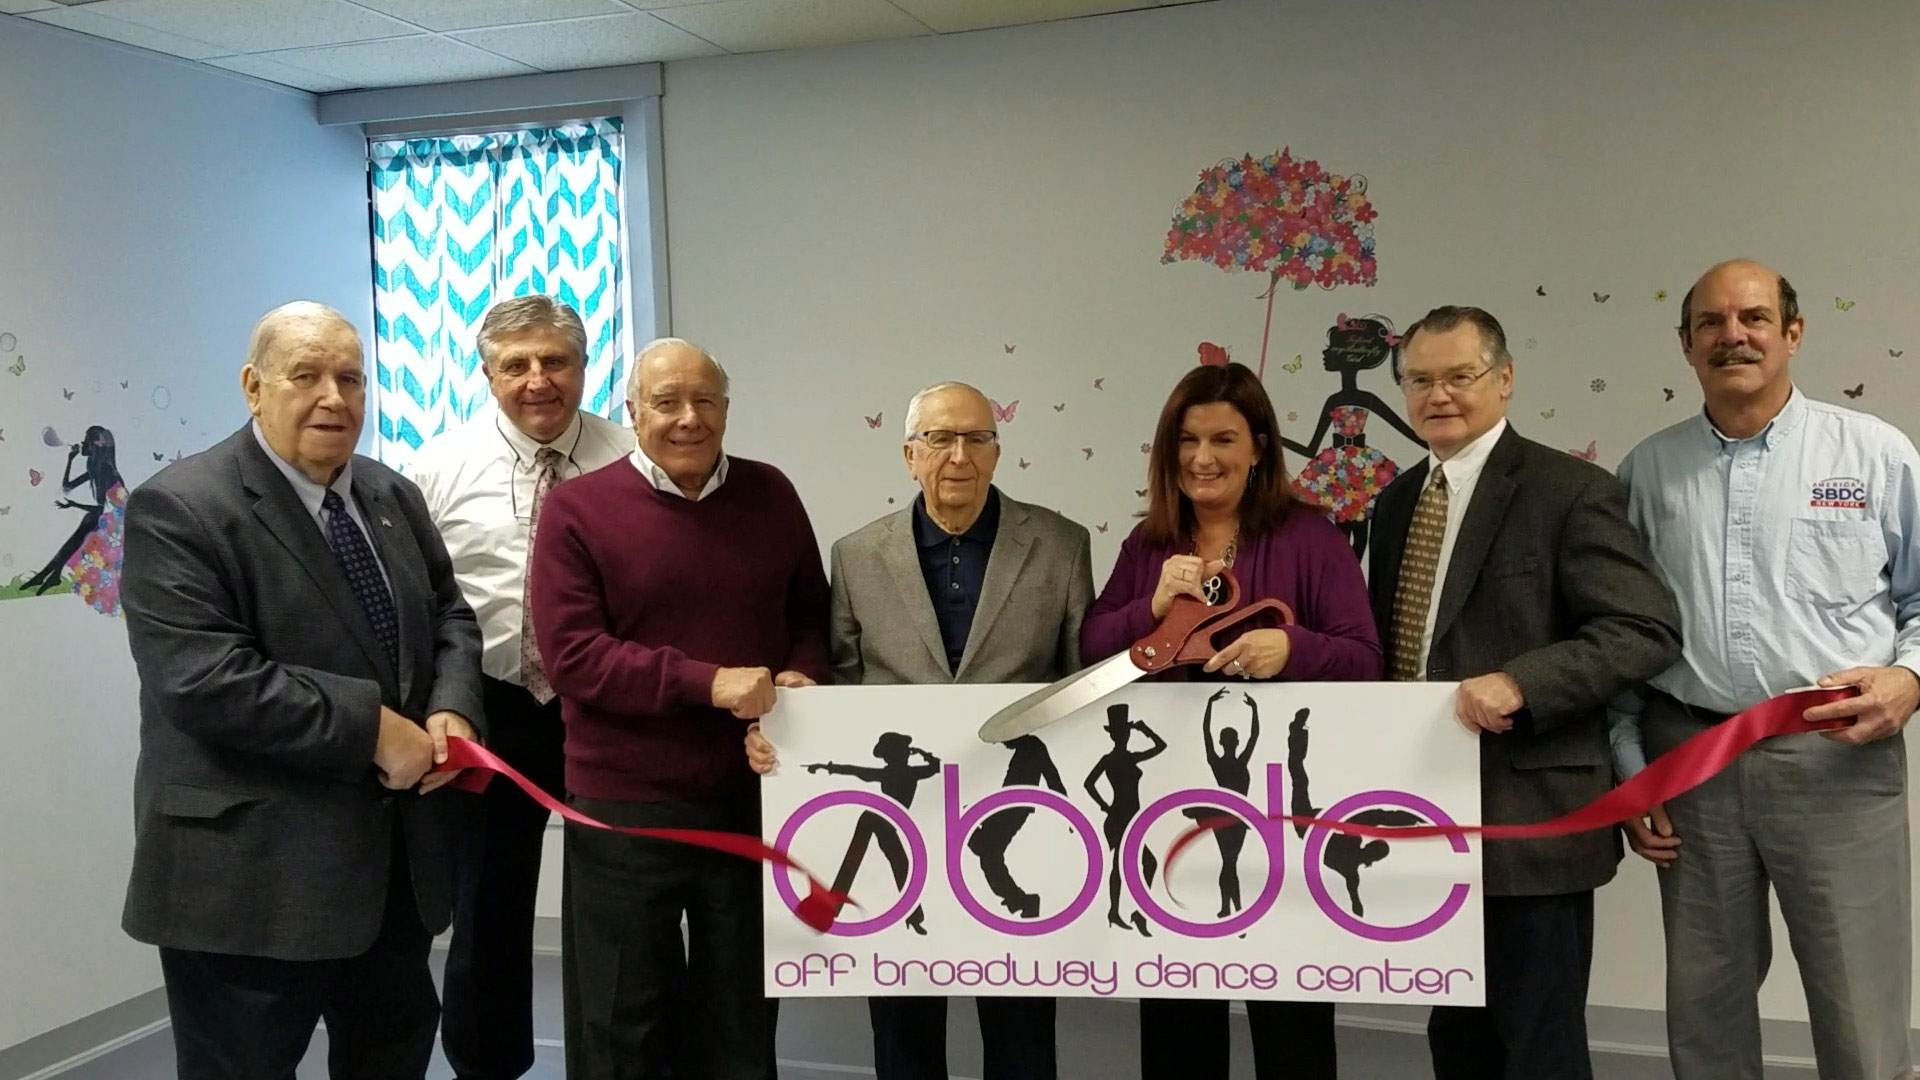 Off Broadway Dance Center Ribbon Cutting